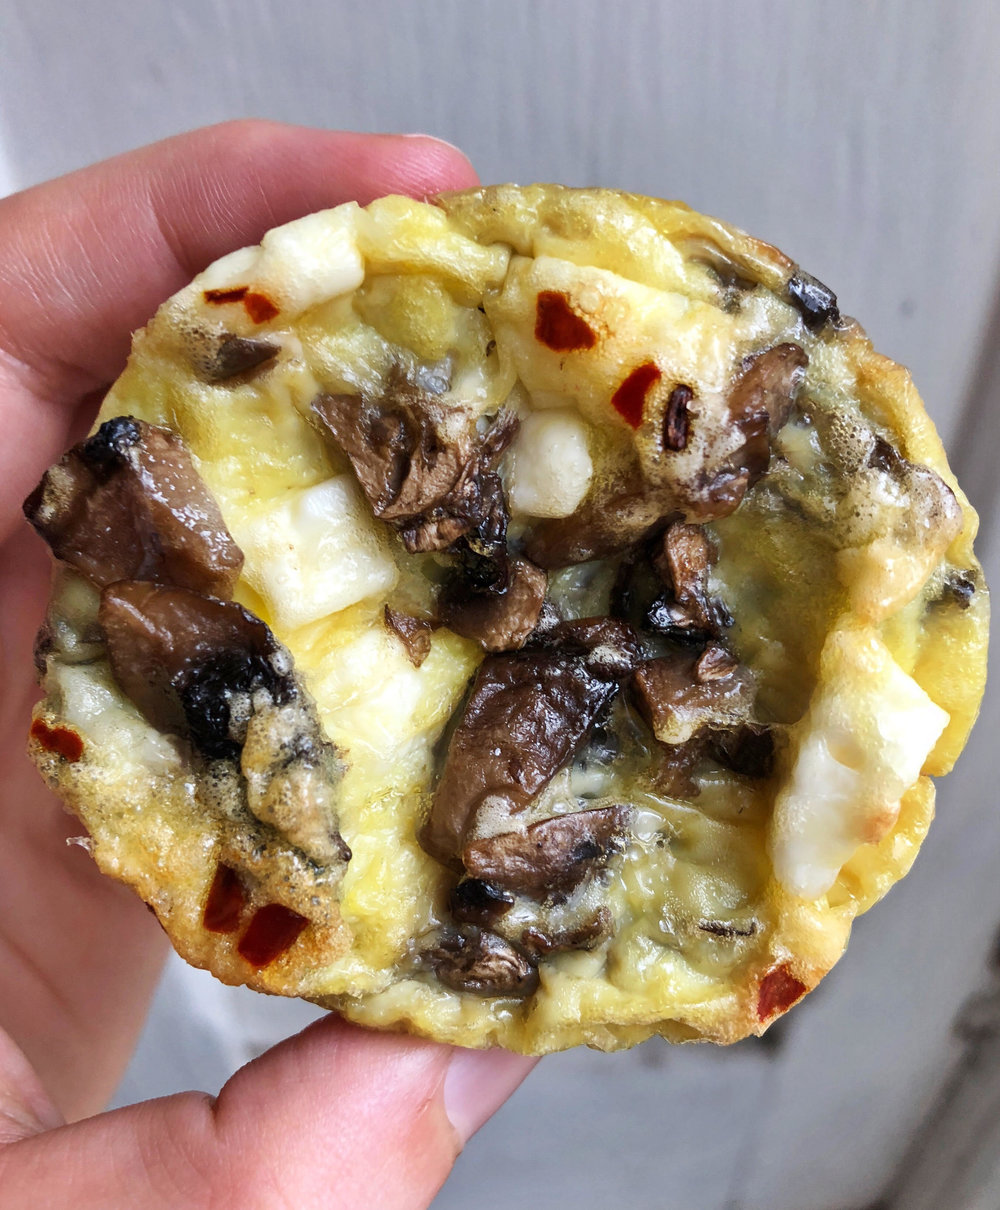 Mushroom and feta baked egg cups made with 5 simple ingredients and are perfect for a breakfast meal prep. You can prep this simple breakfast on Sunday and enjoy it all week!